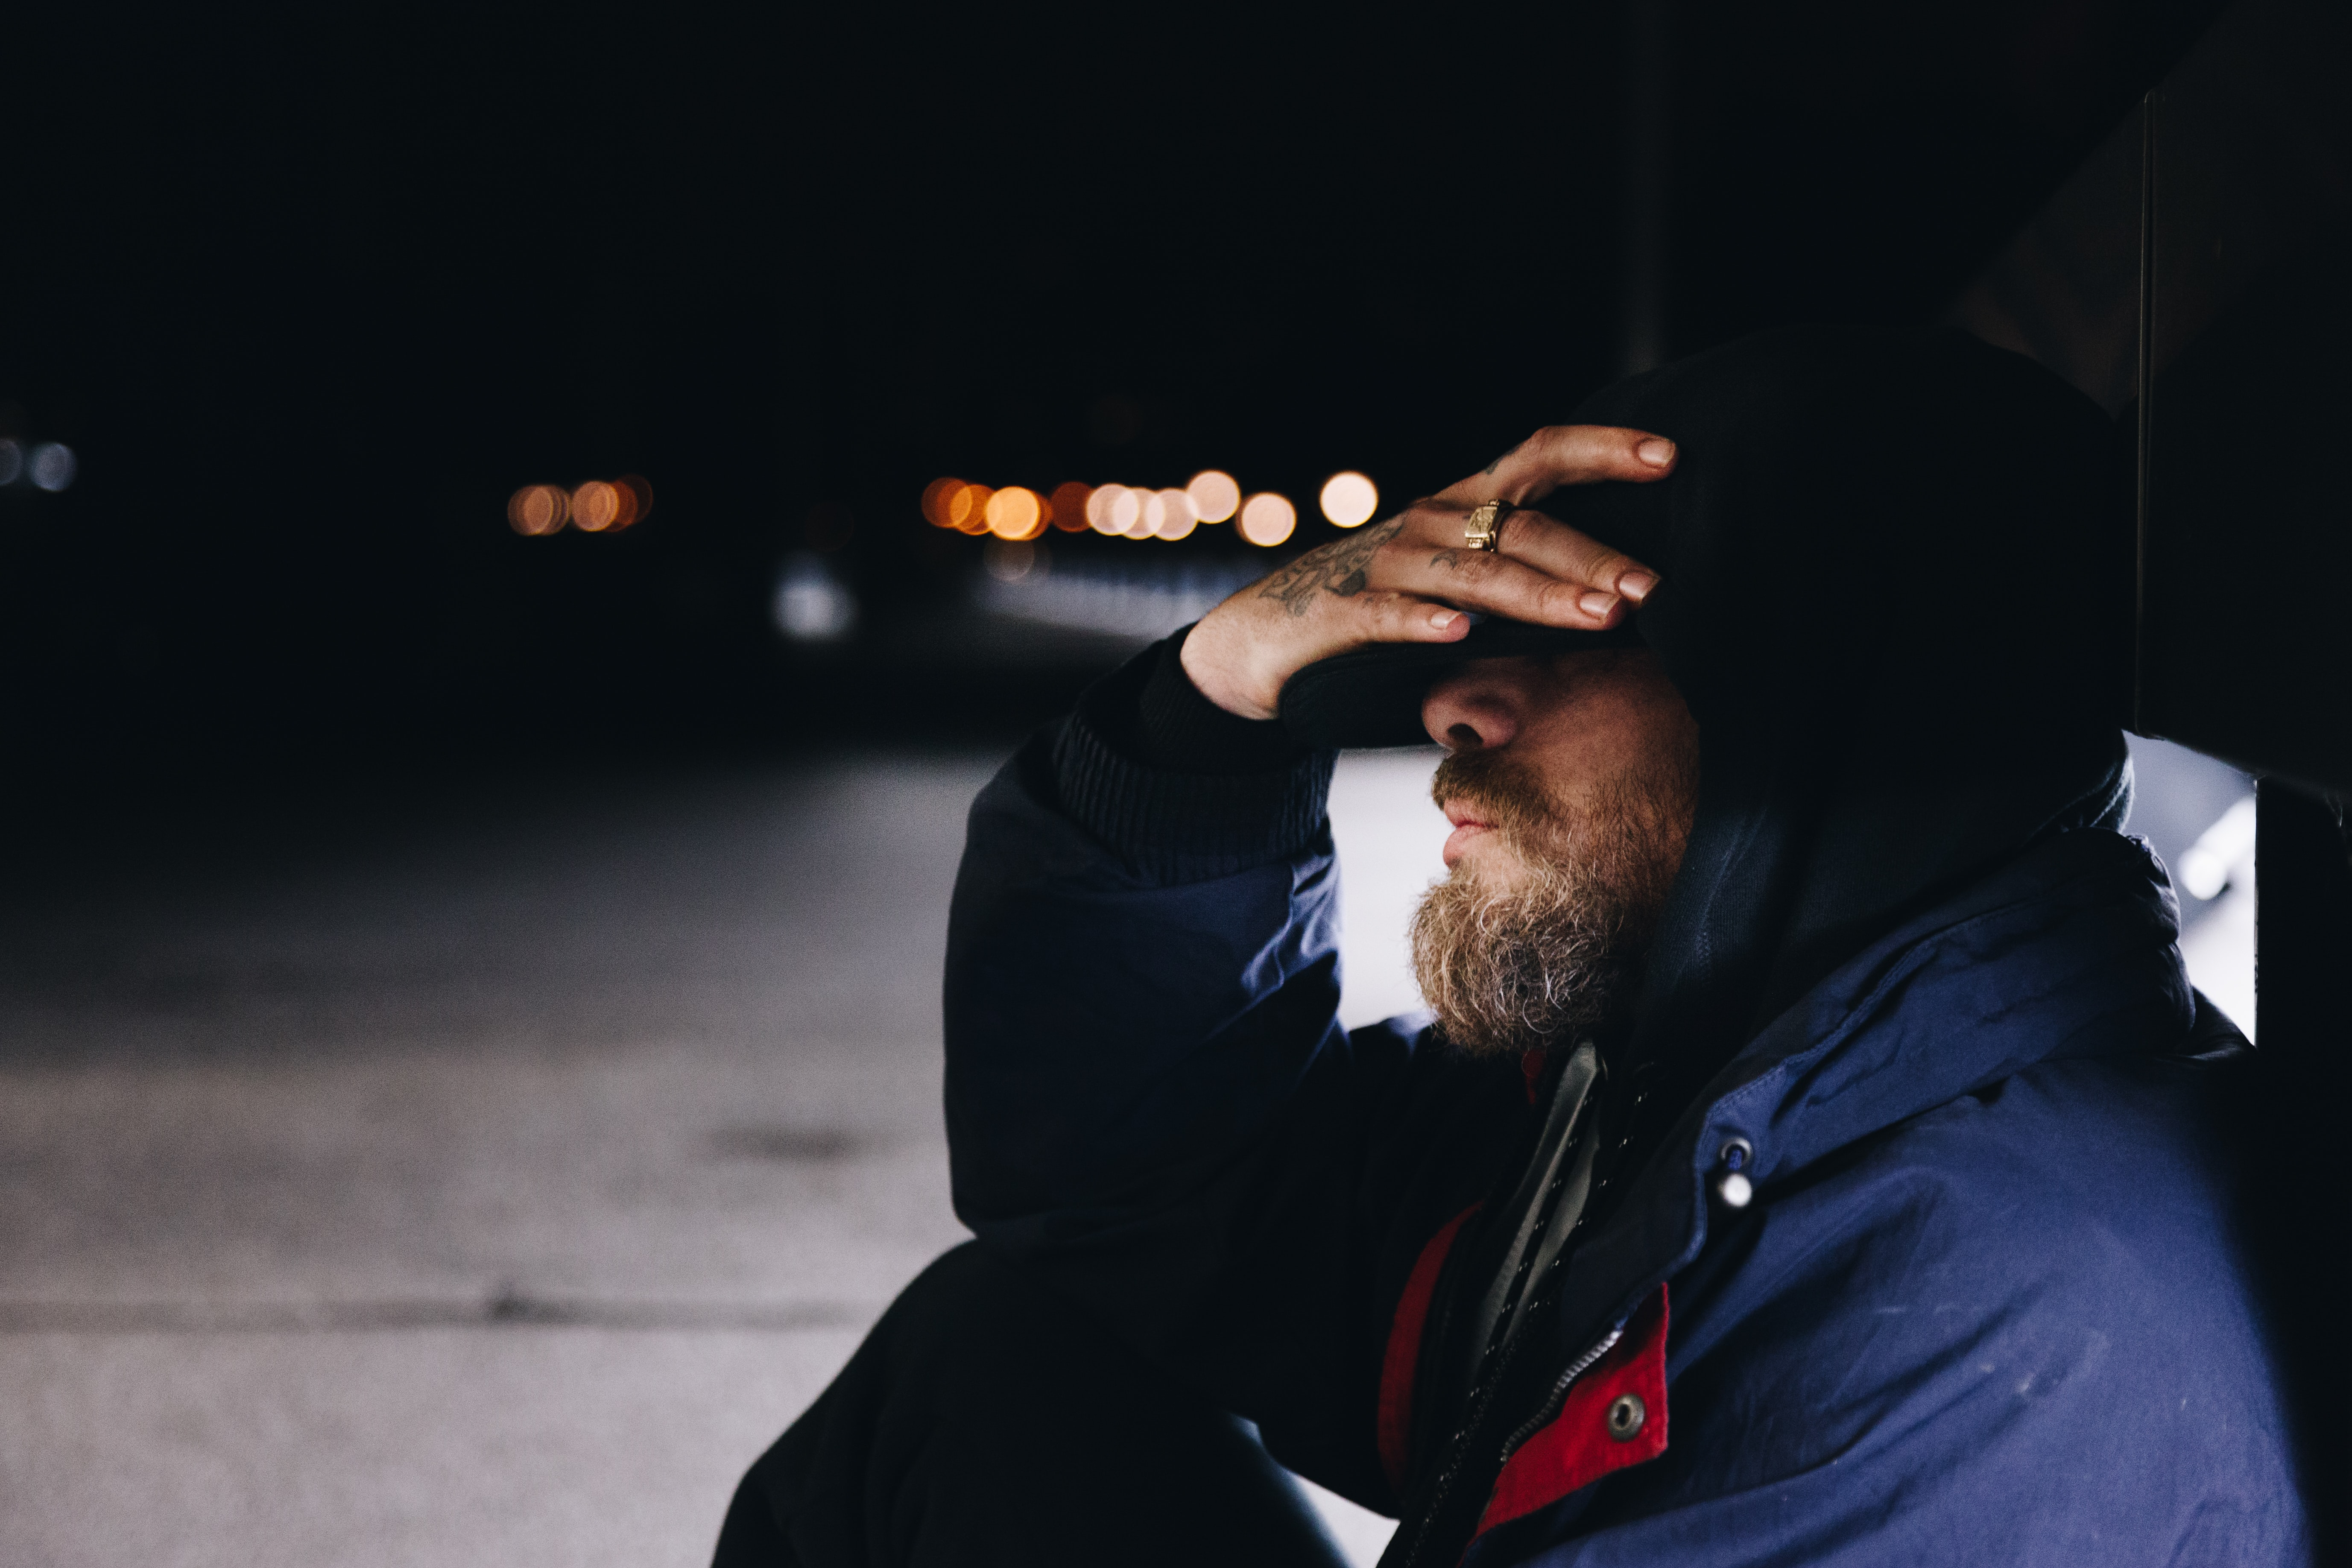 bearded man with hand on head feeling stuck in life